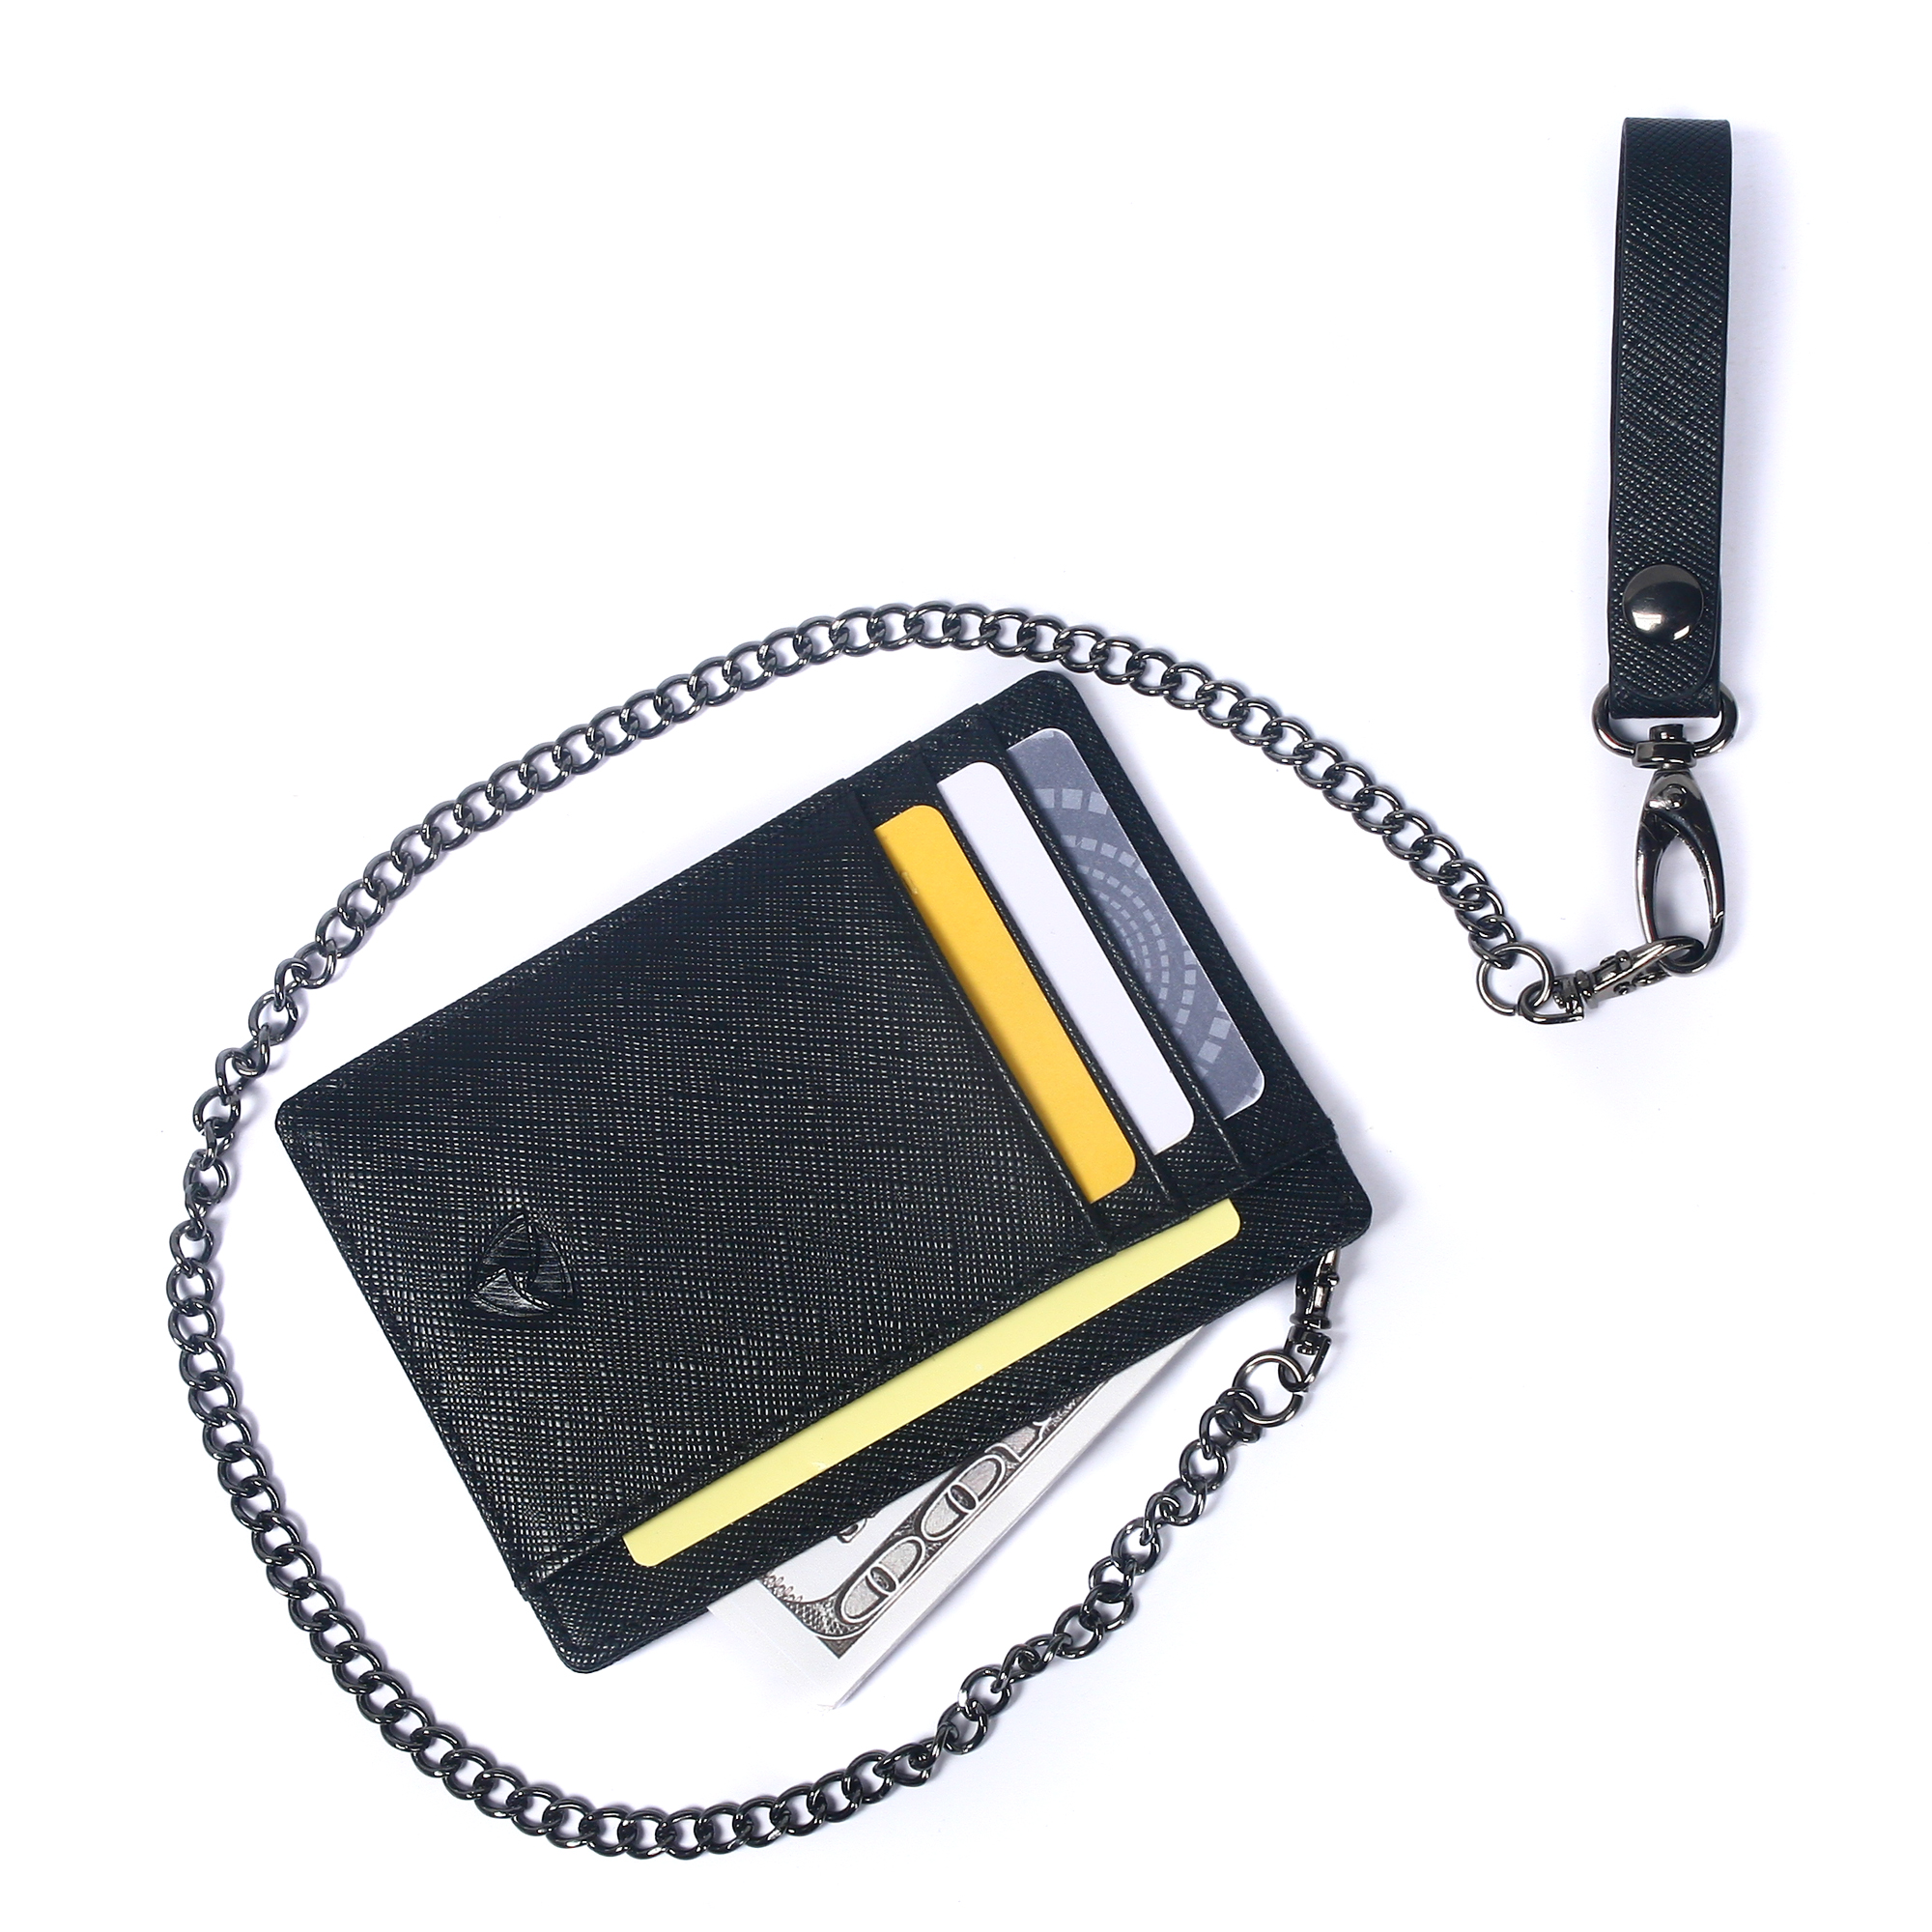 STRONG SECURITY SNATCH CHAIN ANTI THEFT WALLET PURSE KEYS